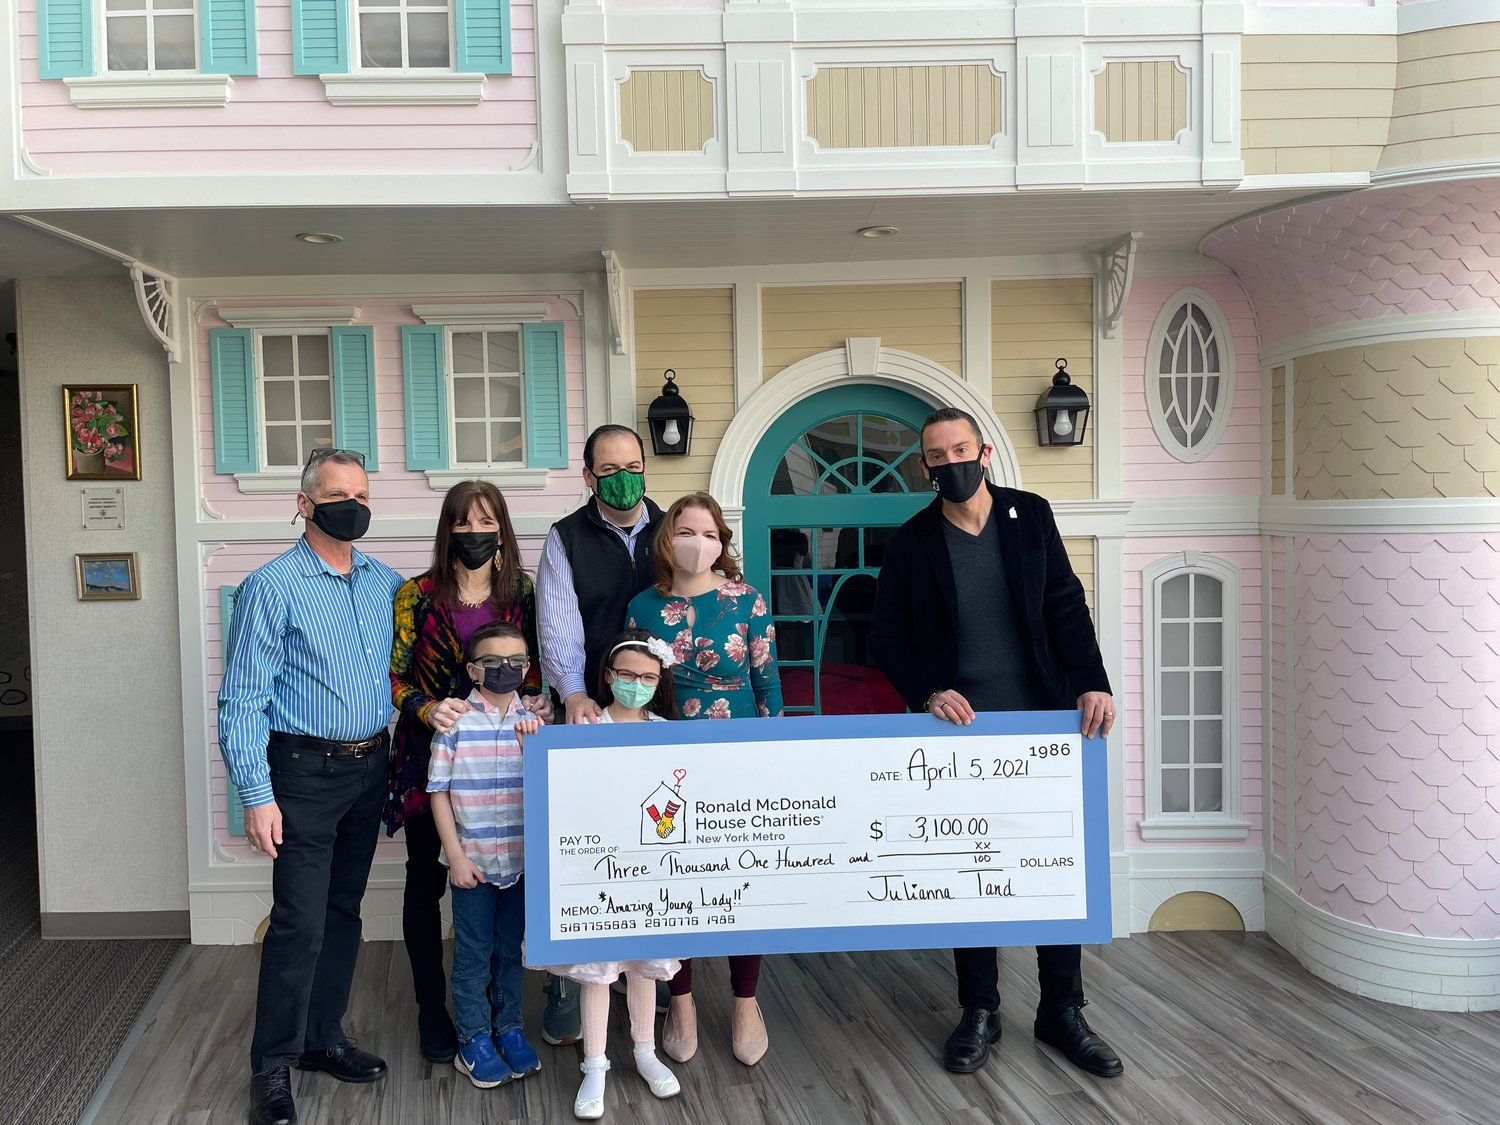 Julianna's grandparents, Joe and Debbie Viola, far left, joined the 